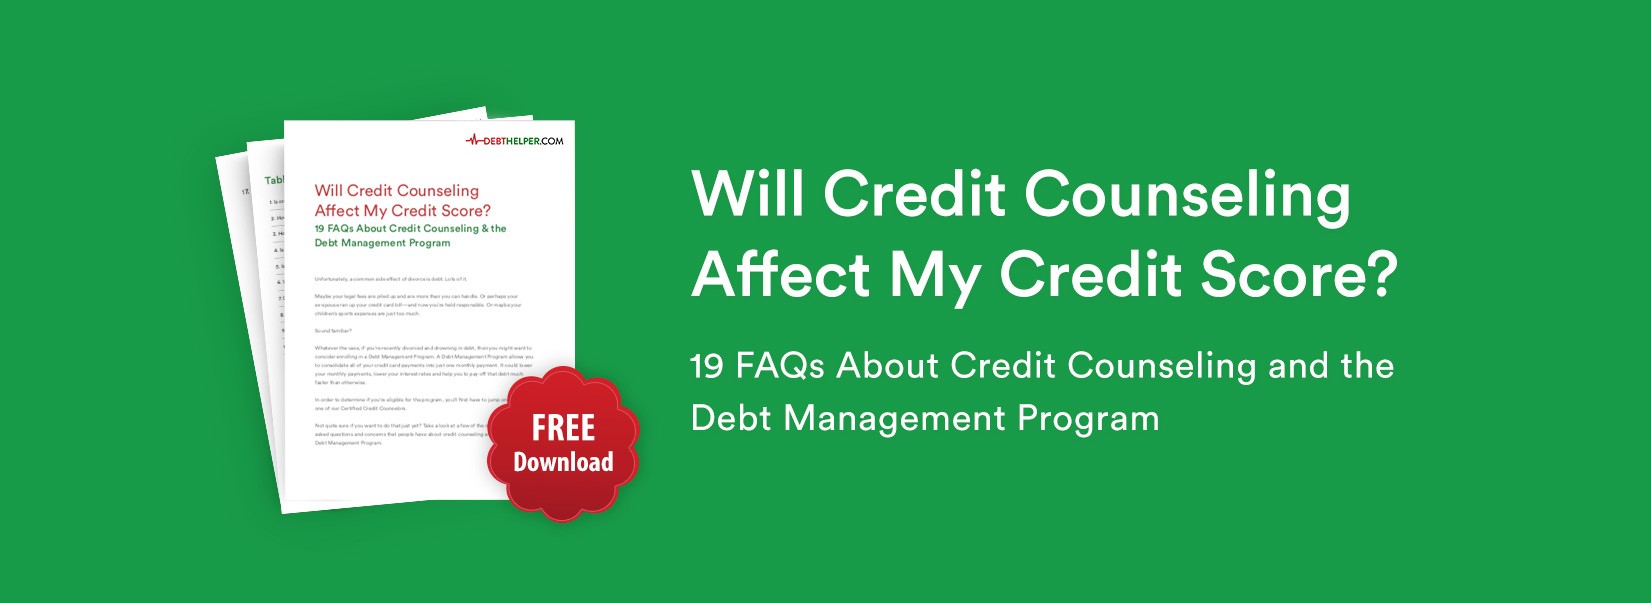 credit counseling faqs